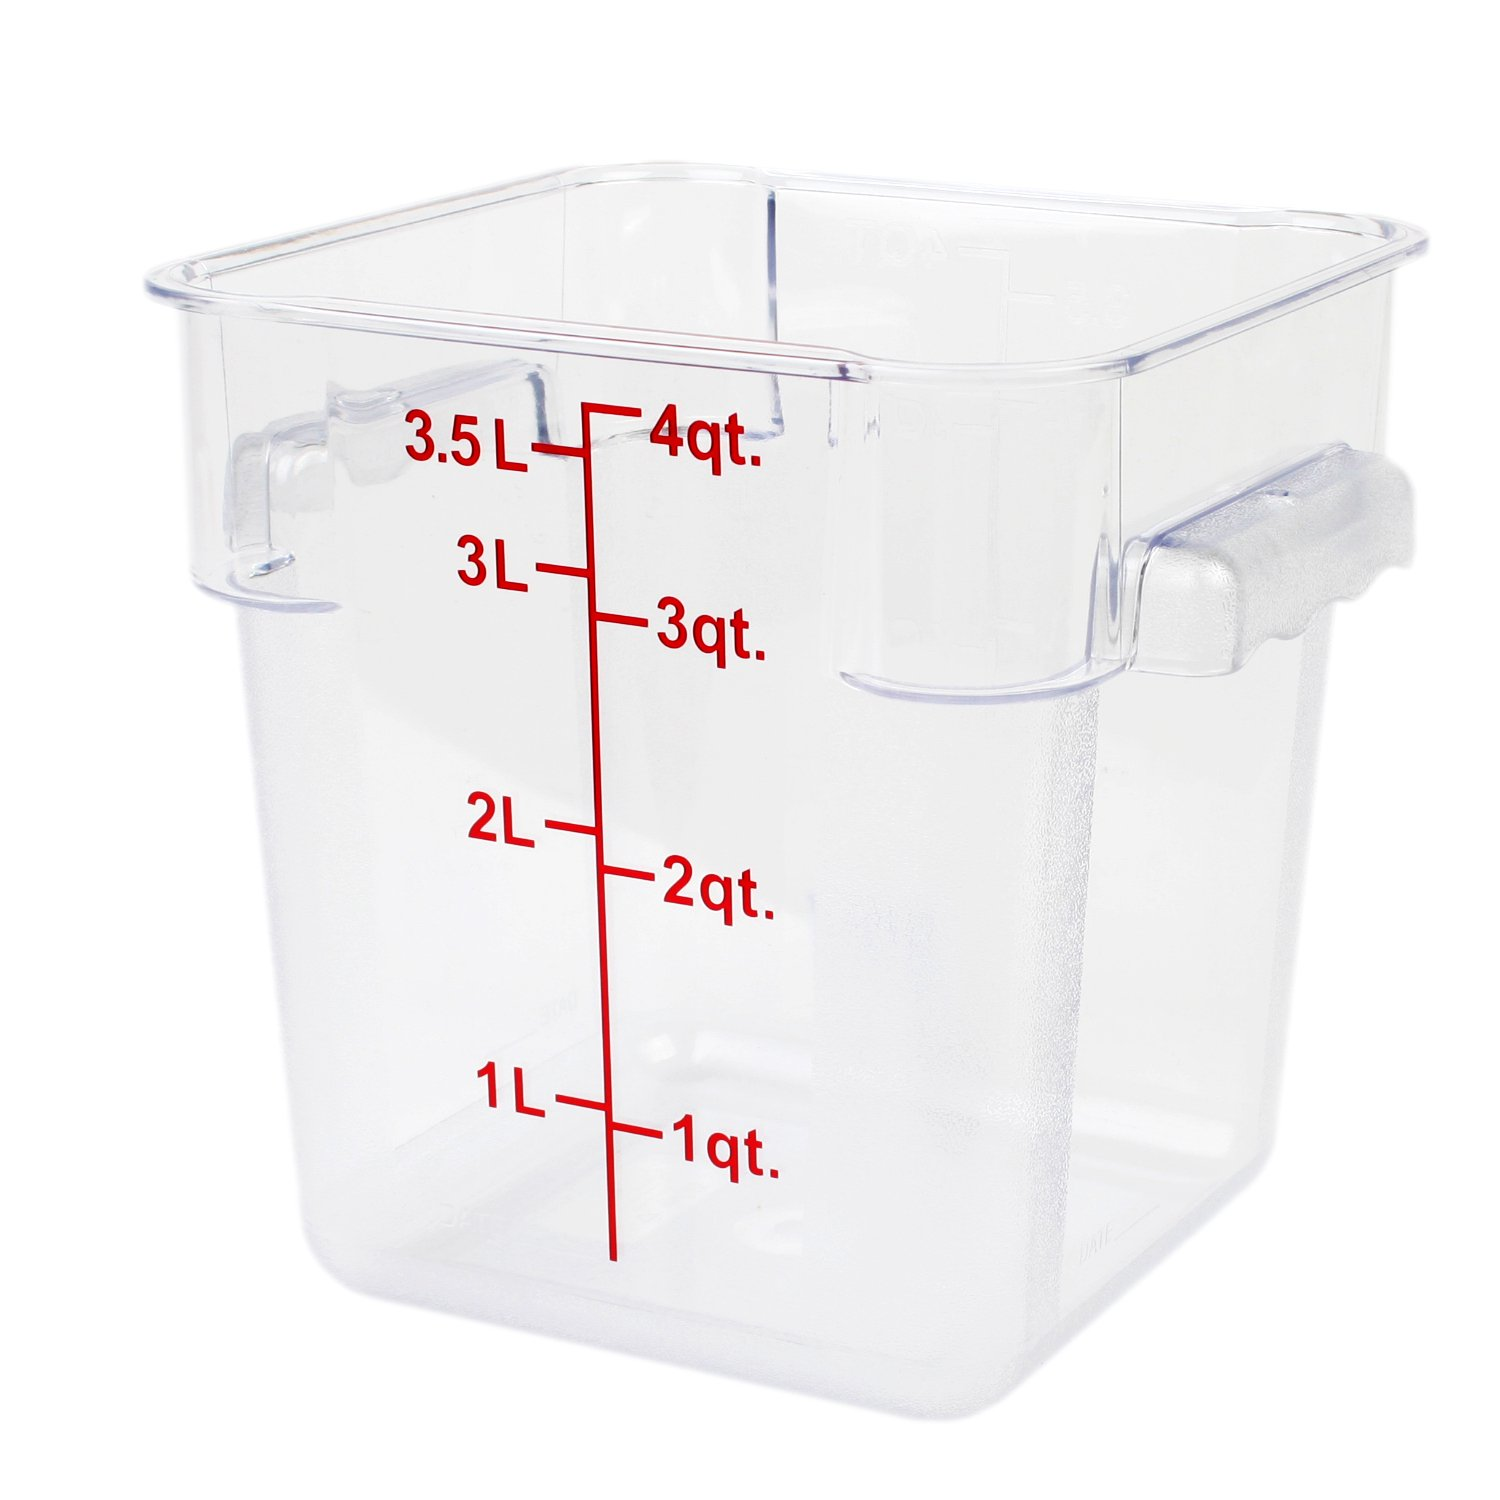 Excellante 4-Quart Polycarbonate Square Food Storage Containers, Clear by Excellant (Image #1)